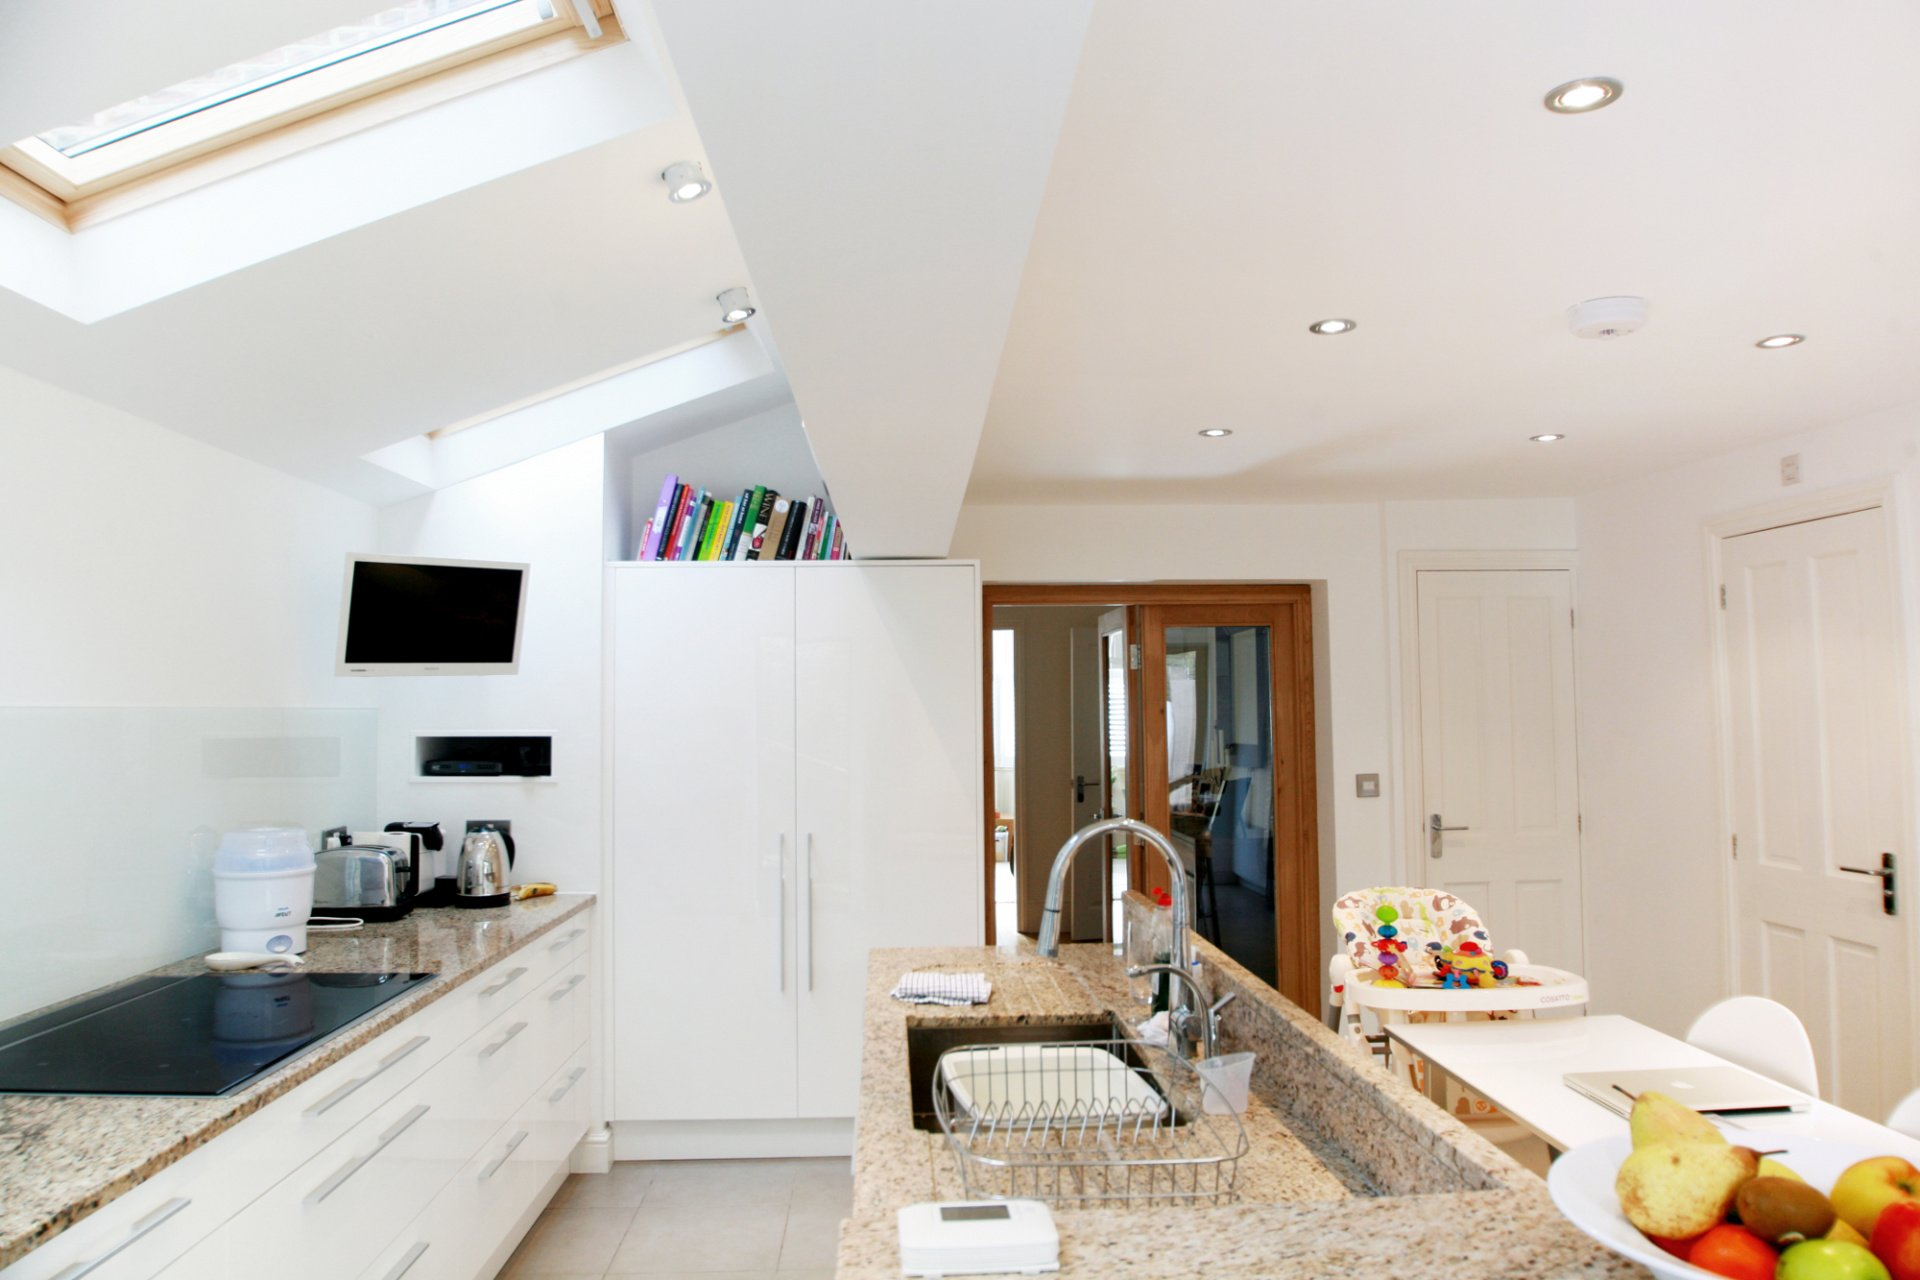 Kitchen Diner Extension Design Mid Terrace House Extension Ideas Taliesin Cardiff Specialists In